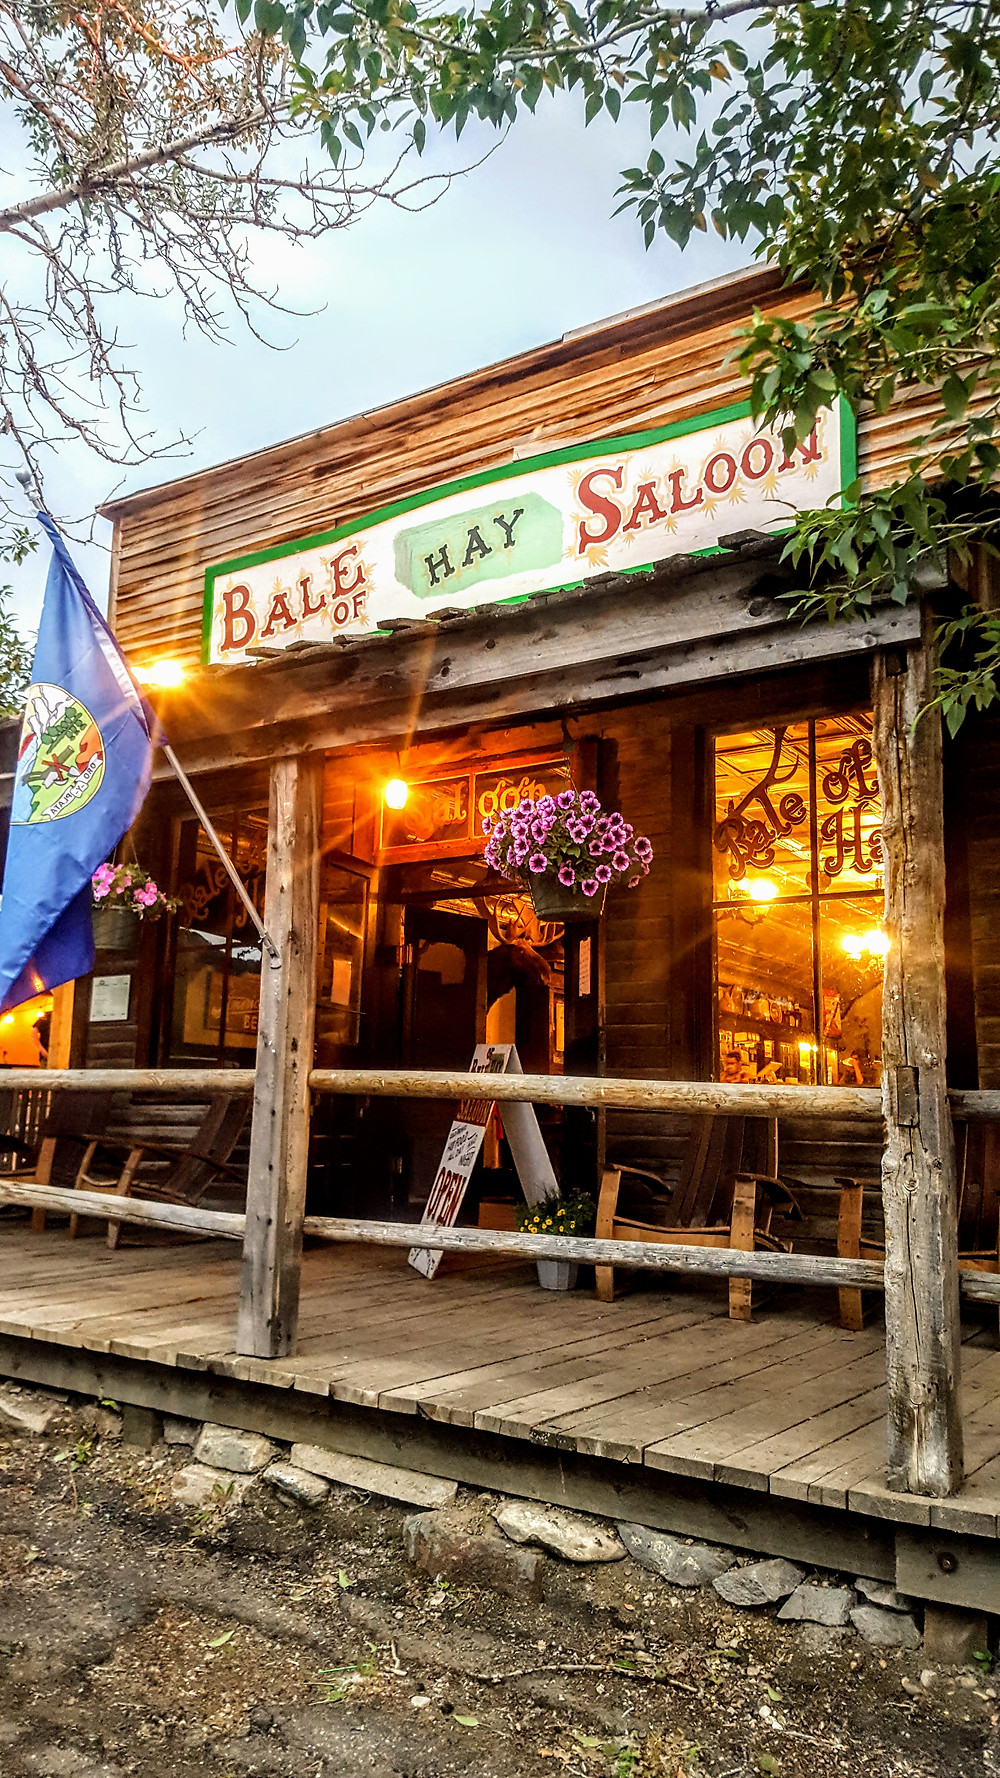 The Bale of Hay Saloon, Montana's oldest bar and drinking establishment.